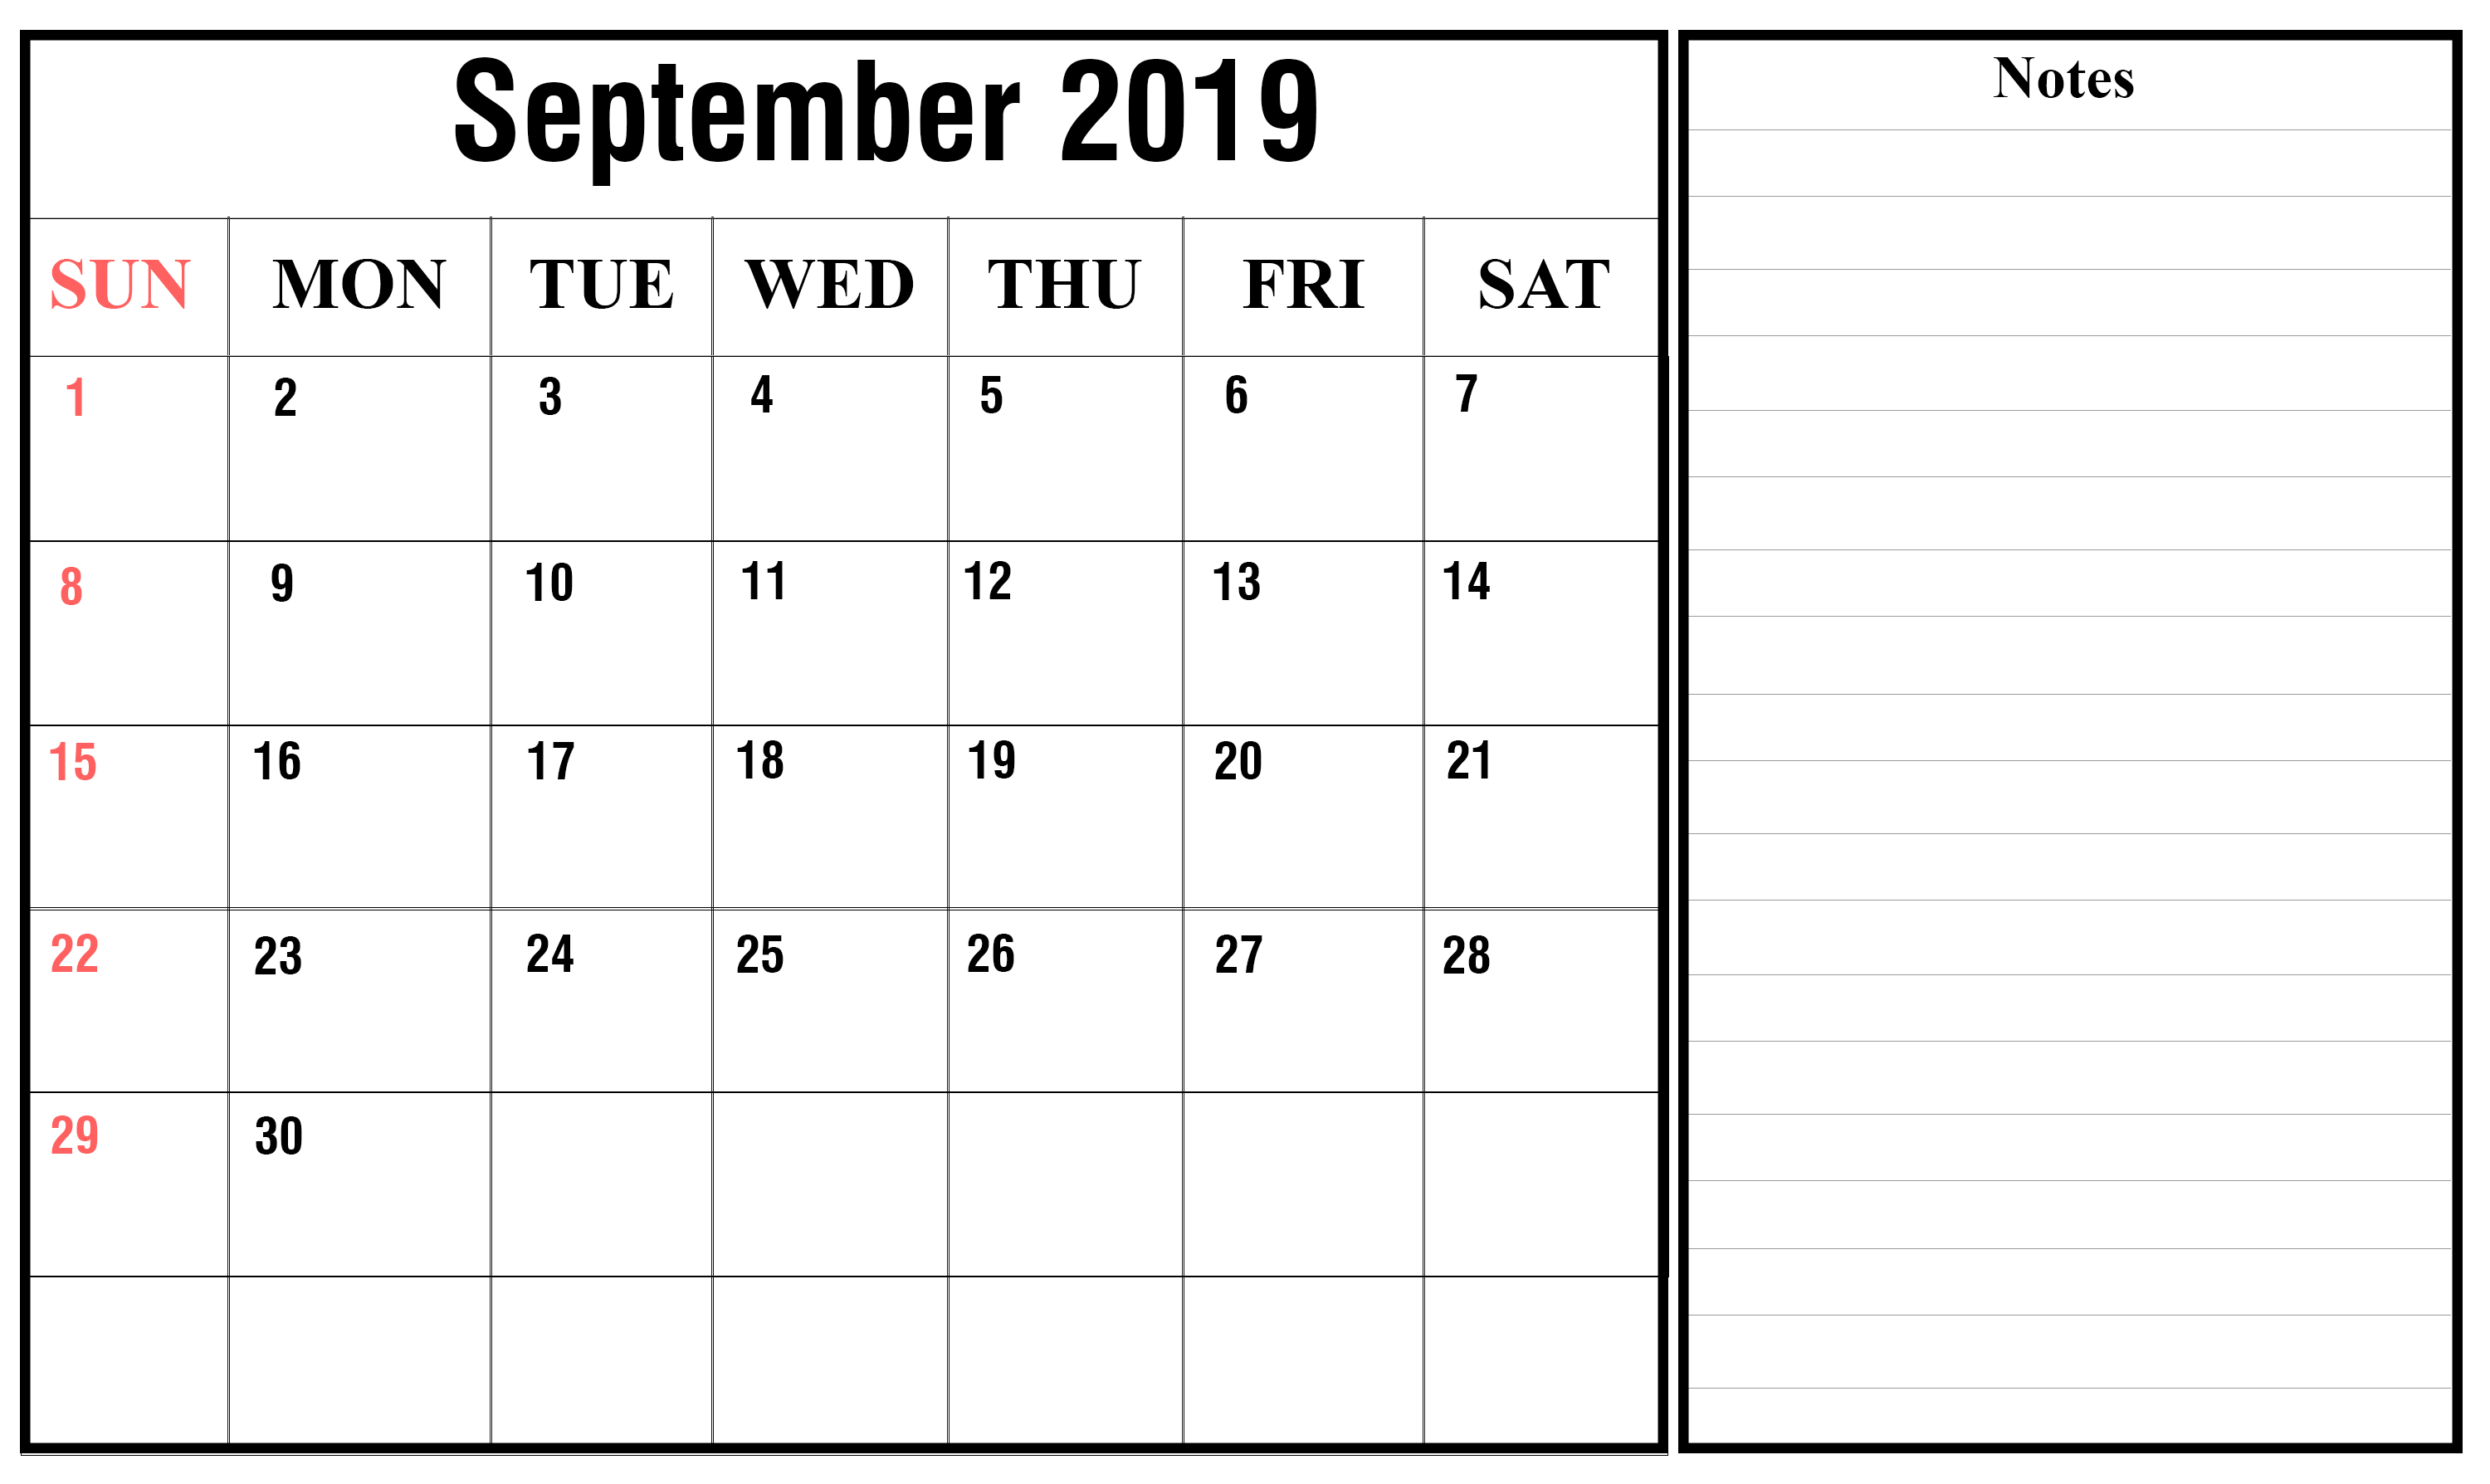 September 2019 Calendar with Notes